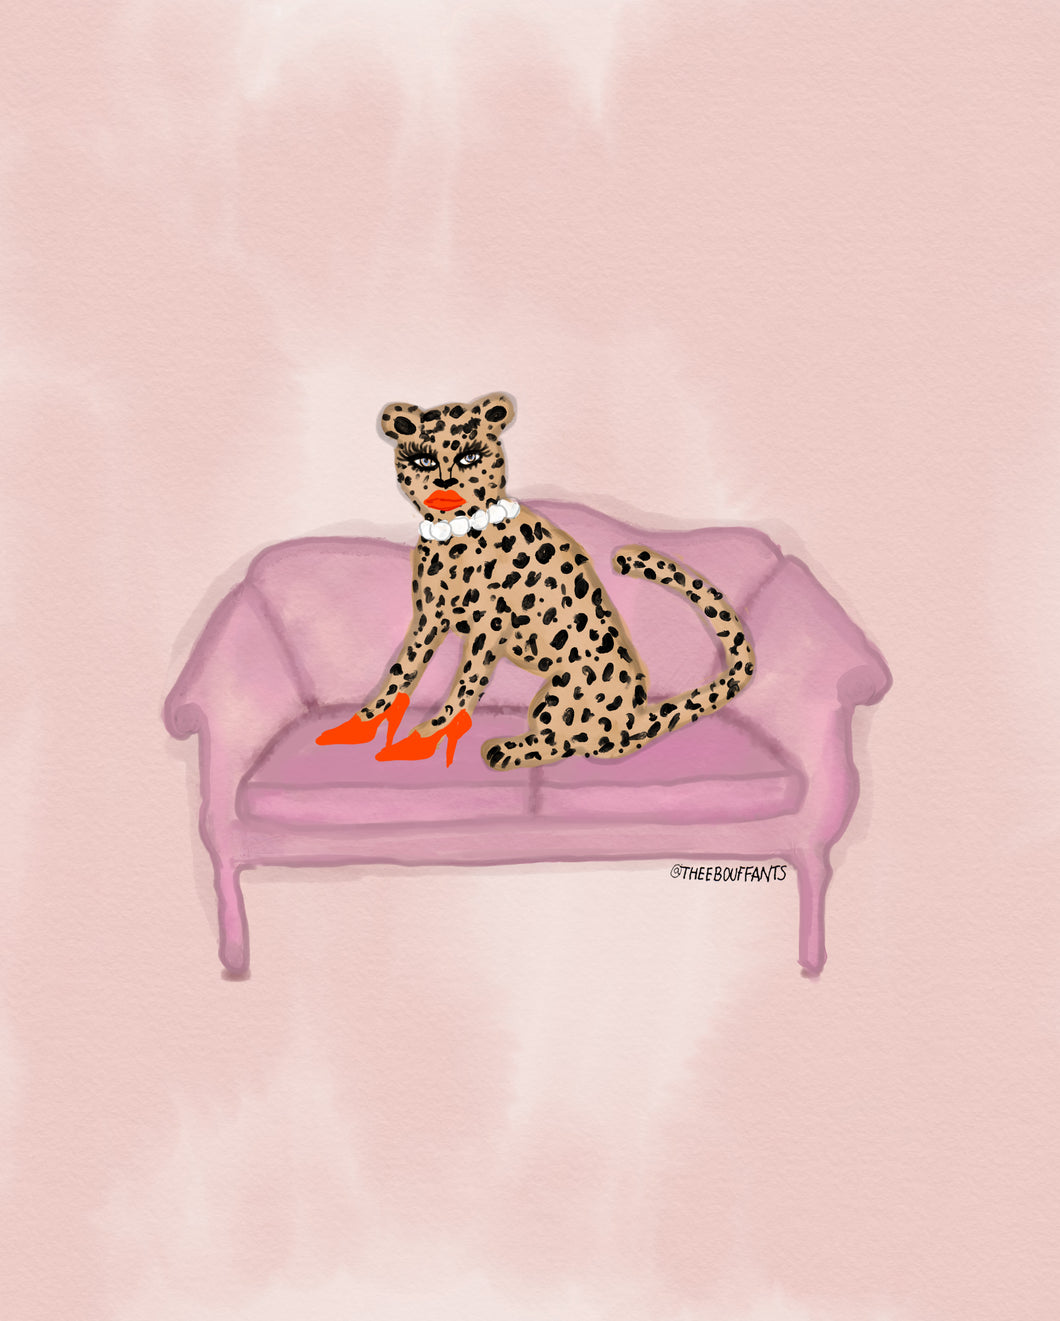 Cheetah On The Couch Print